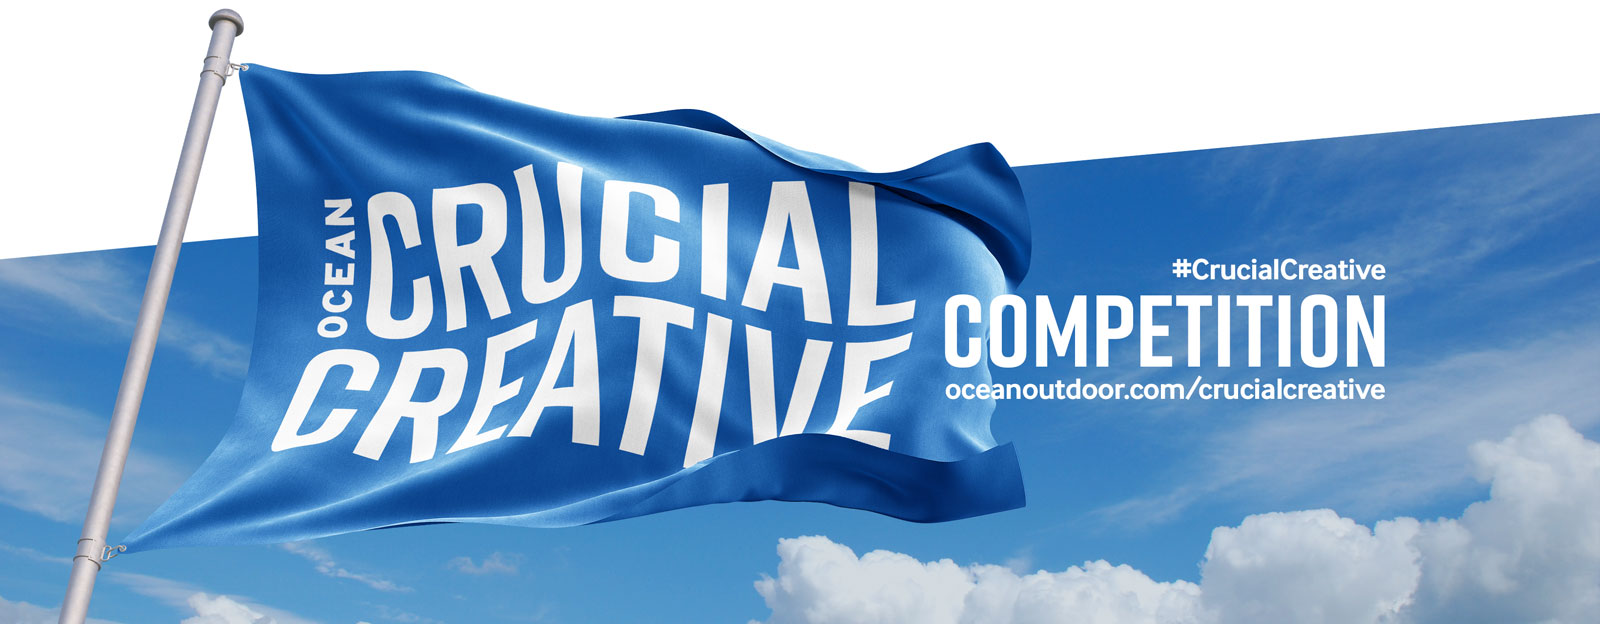 Crucial Creative Competition